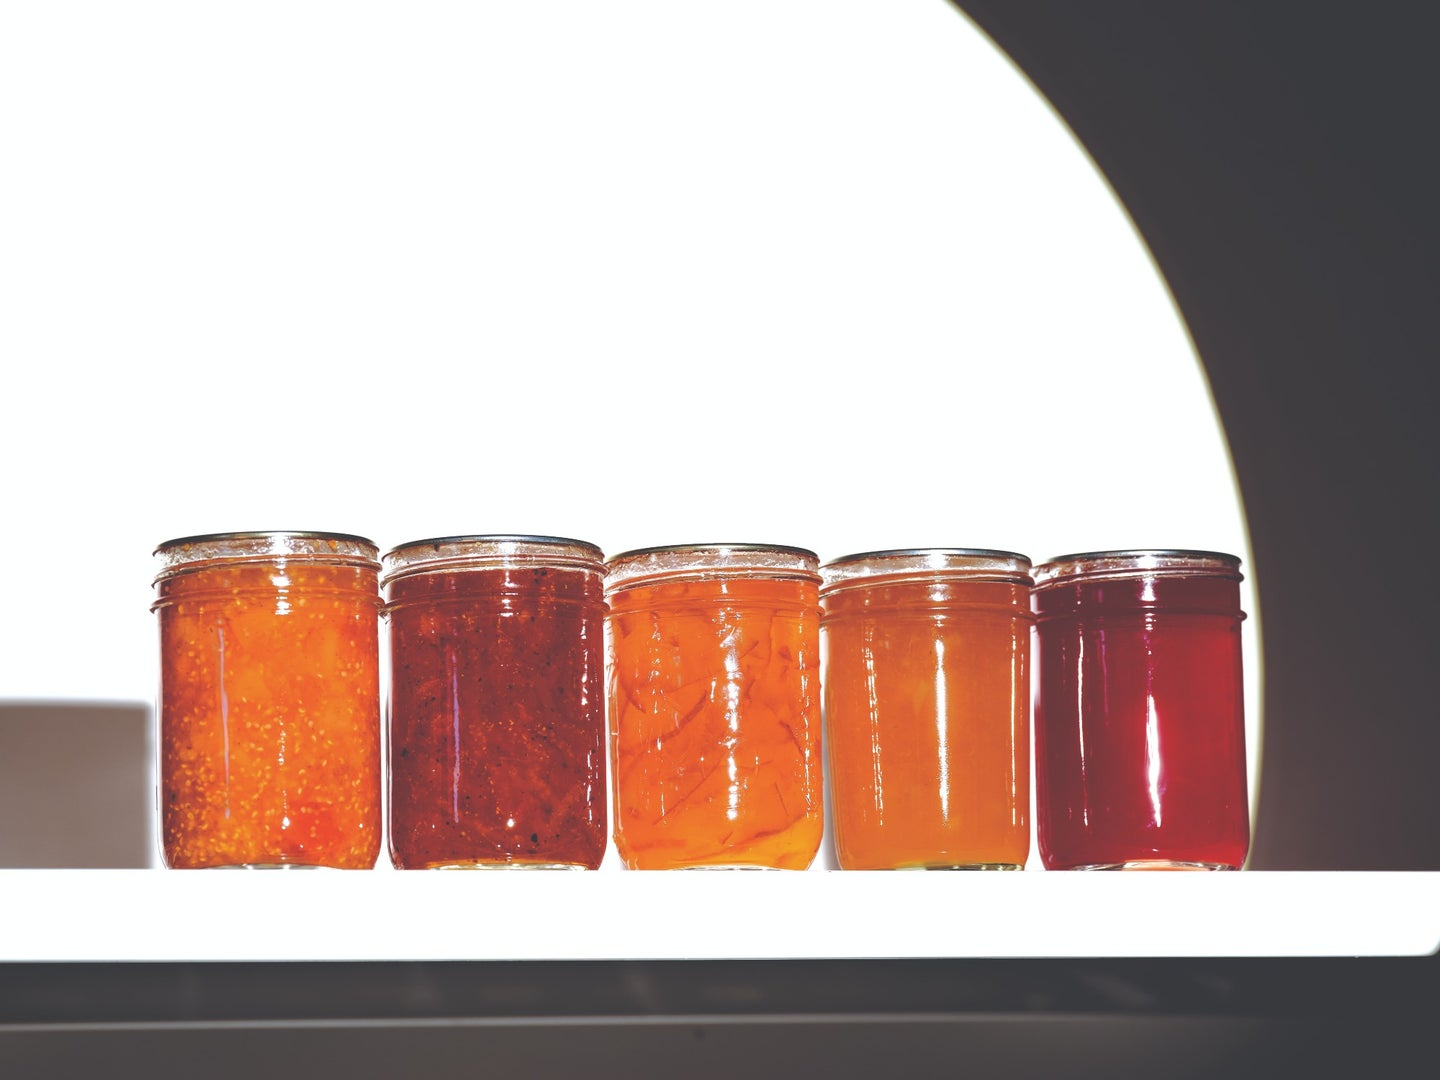 Line of Canned Jars of Jams and Jellies